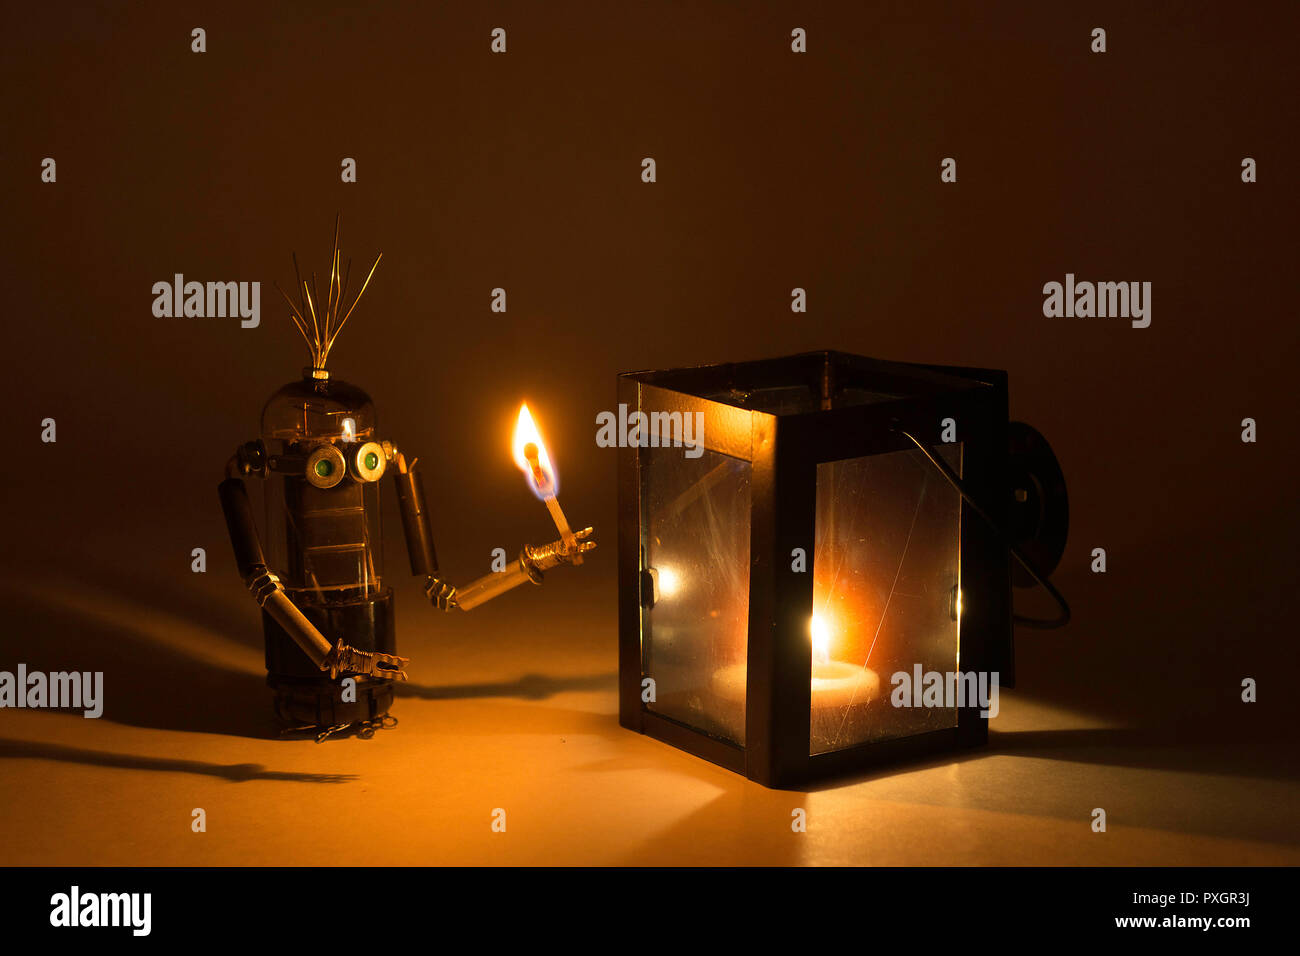 Robot  playing with fire - Stock Image